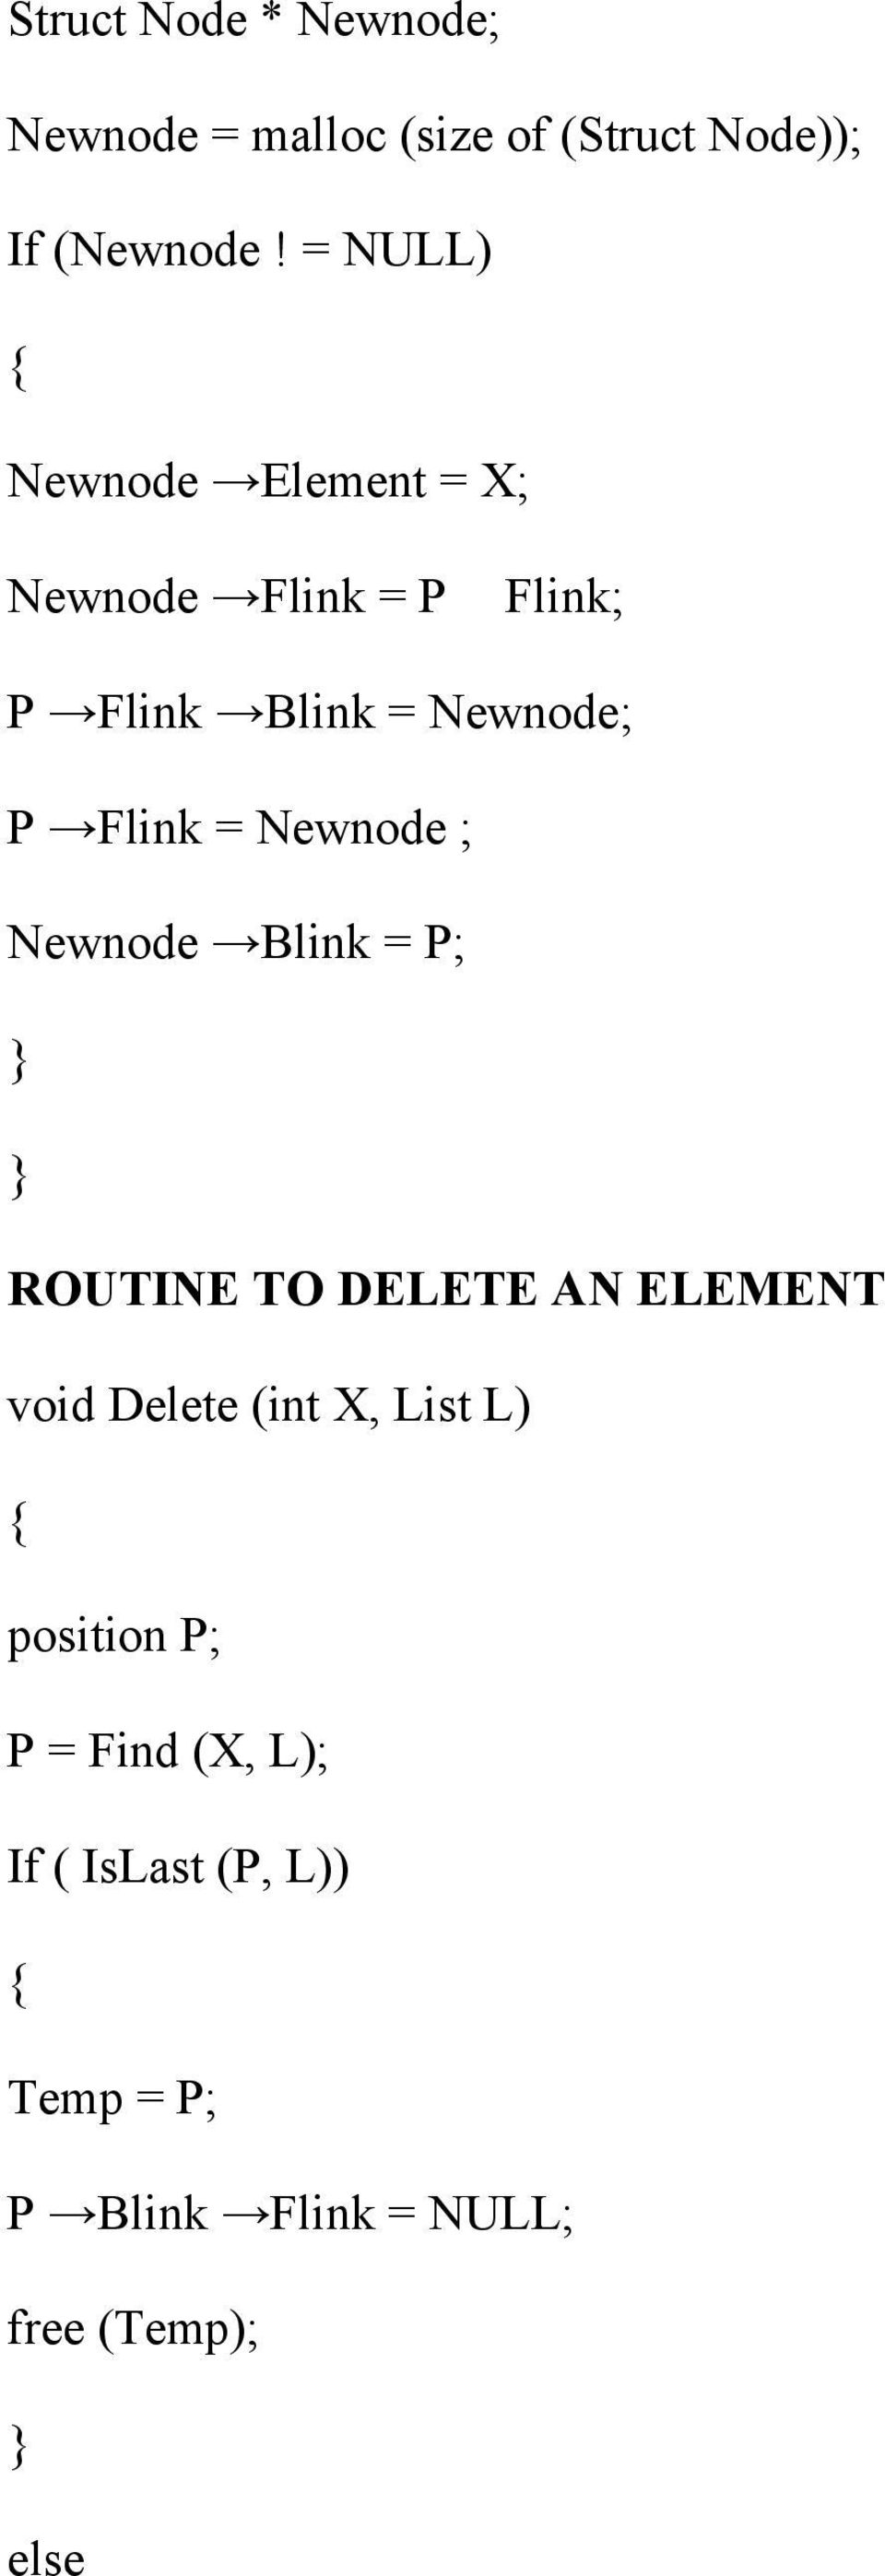 = Newnode ; Newnode Blink = P; ROUTINE TO DELETE AN ELEMENT void Delete (int X, List L)